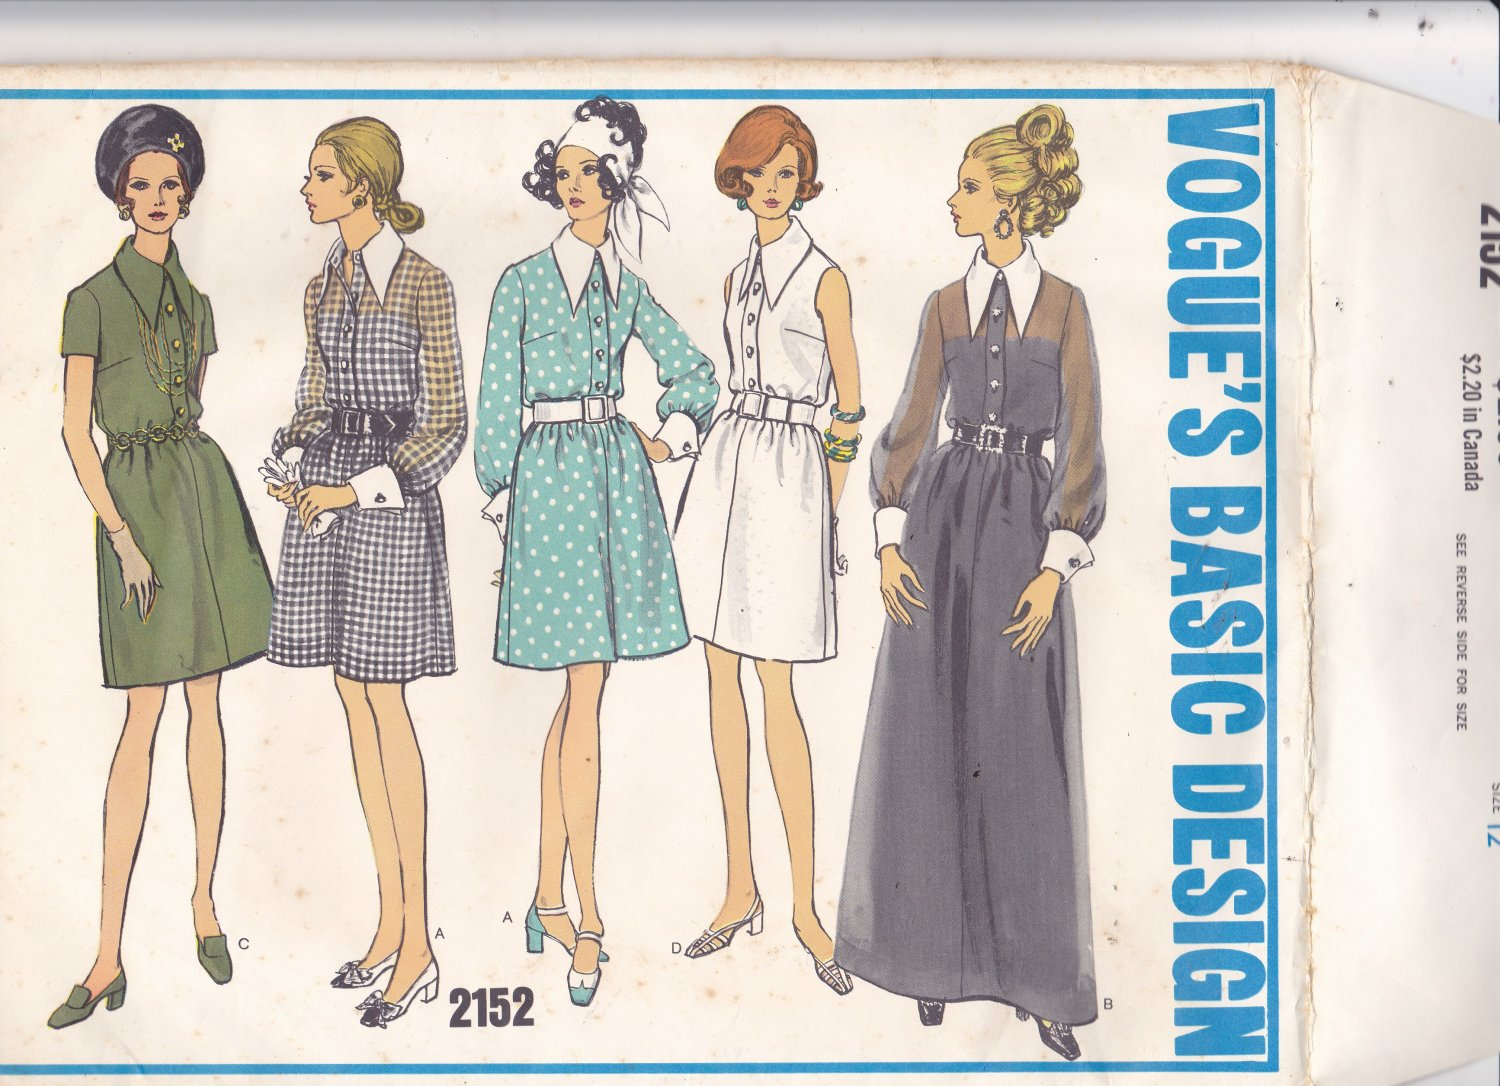 Vogue Basic Design 2152 Pattern 12 Uncut Shirtwaist Dress vintage 1960s